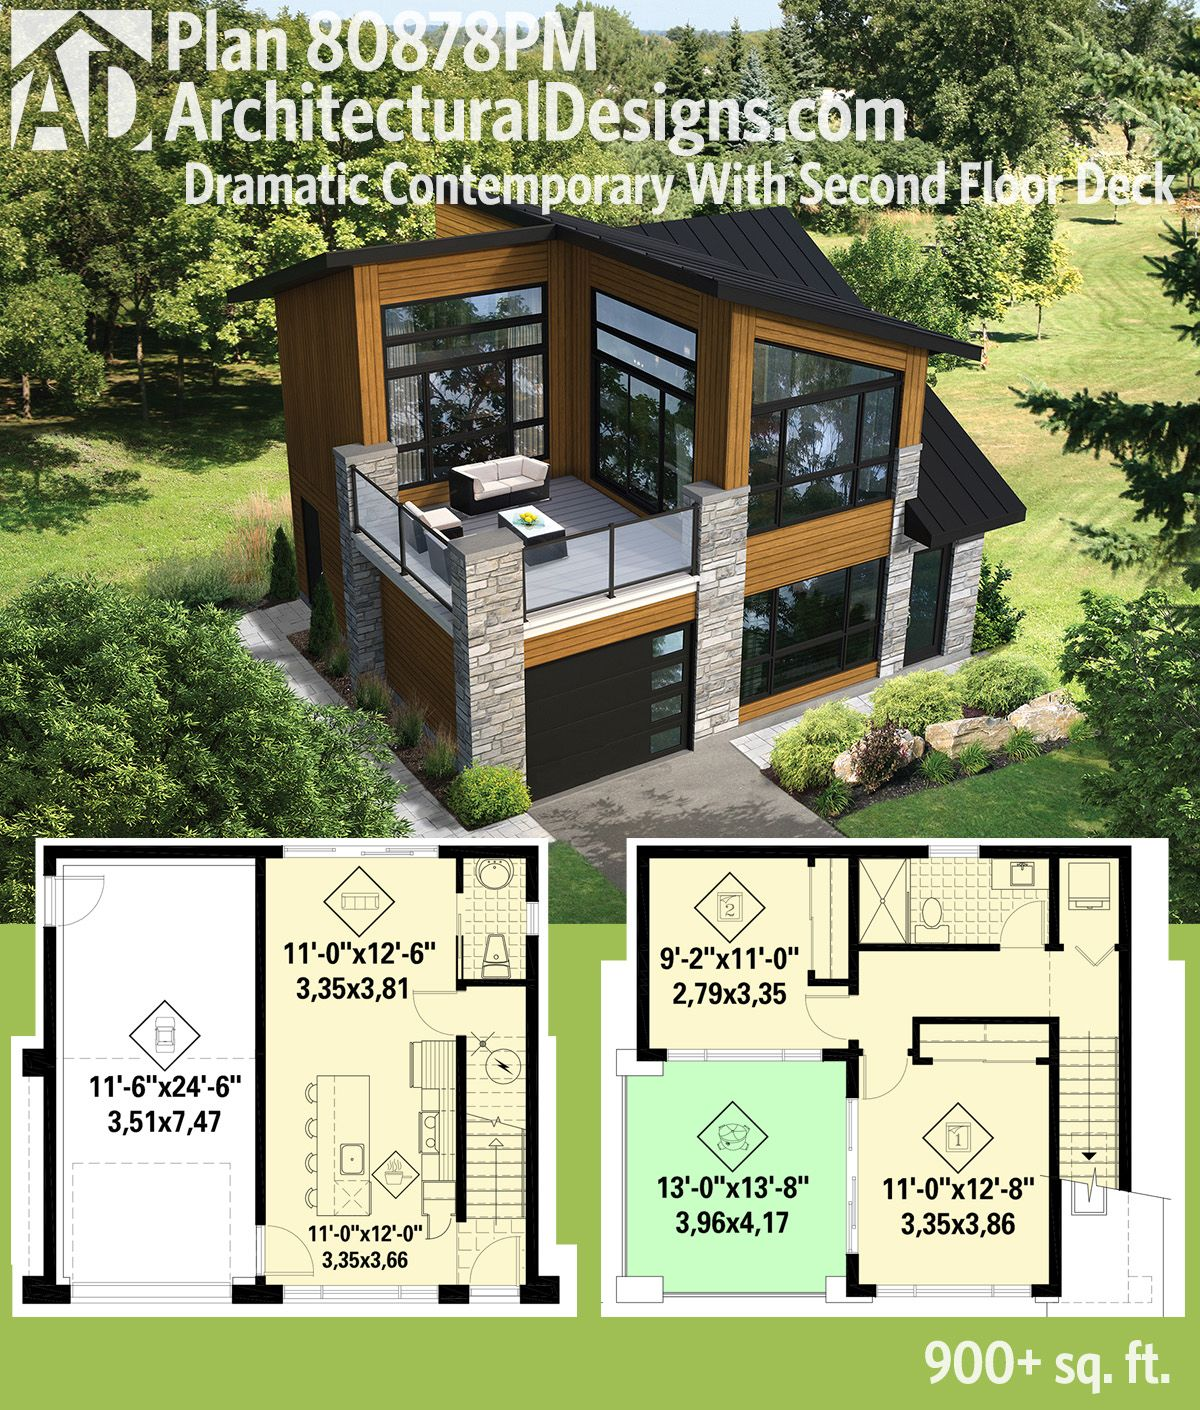 plan 80878pm dramatic contemporary with second floor deck tiny houses get a deck over the garage and over 900 square feet of living with architectural designs